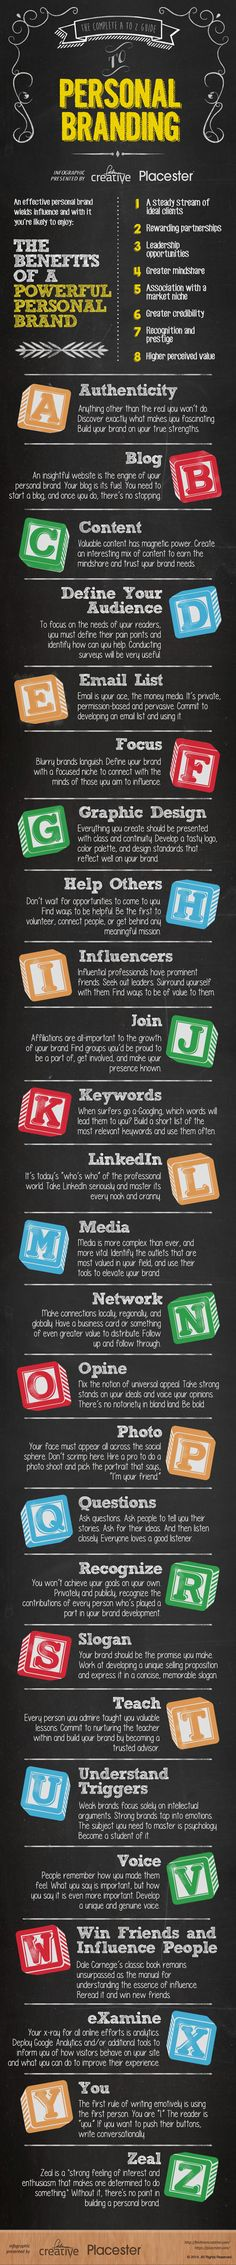 Infographic: The guide-to-personal-branding